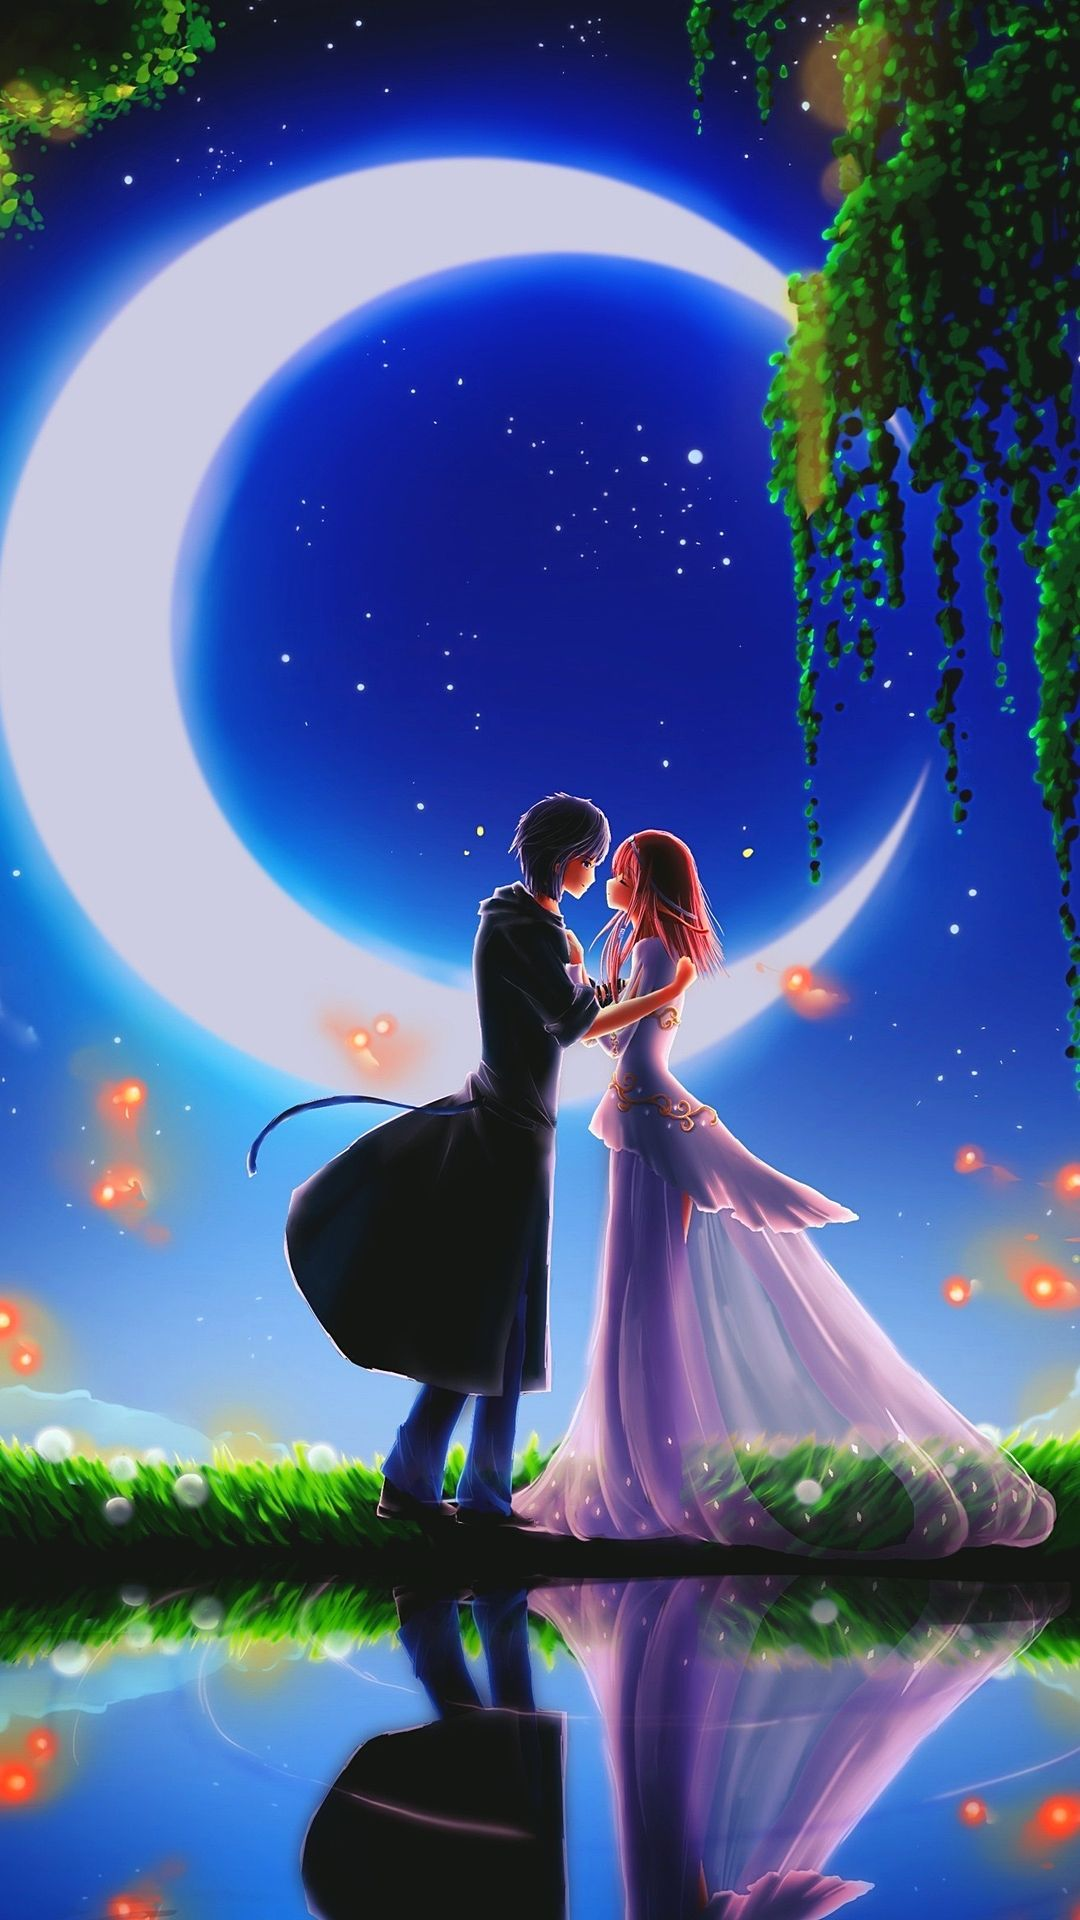 Anime Couple Wallpaper 4k 1280x2120 Embraced And Endeared Anime Couple 4k Iphone 6 Hd Anime Couple Wallpaper In 2020 Hd Anime Wallpapers Anime Anime Wallpaper Iphone